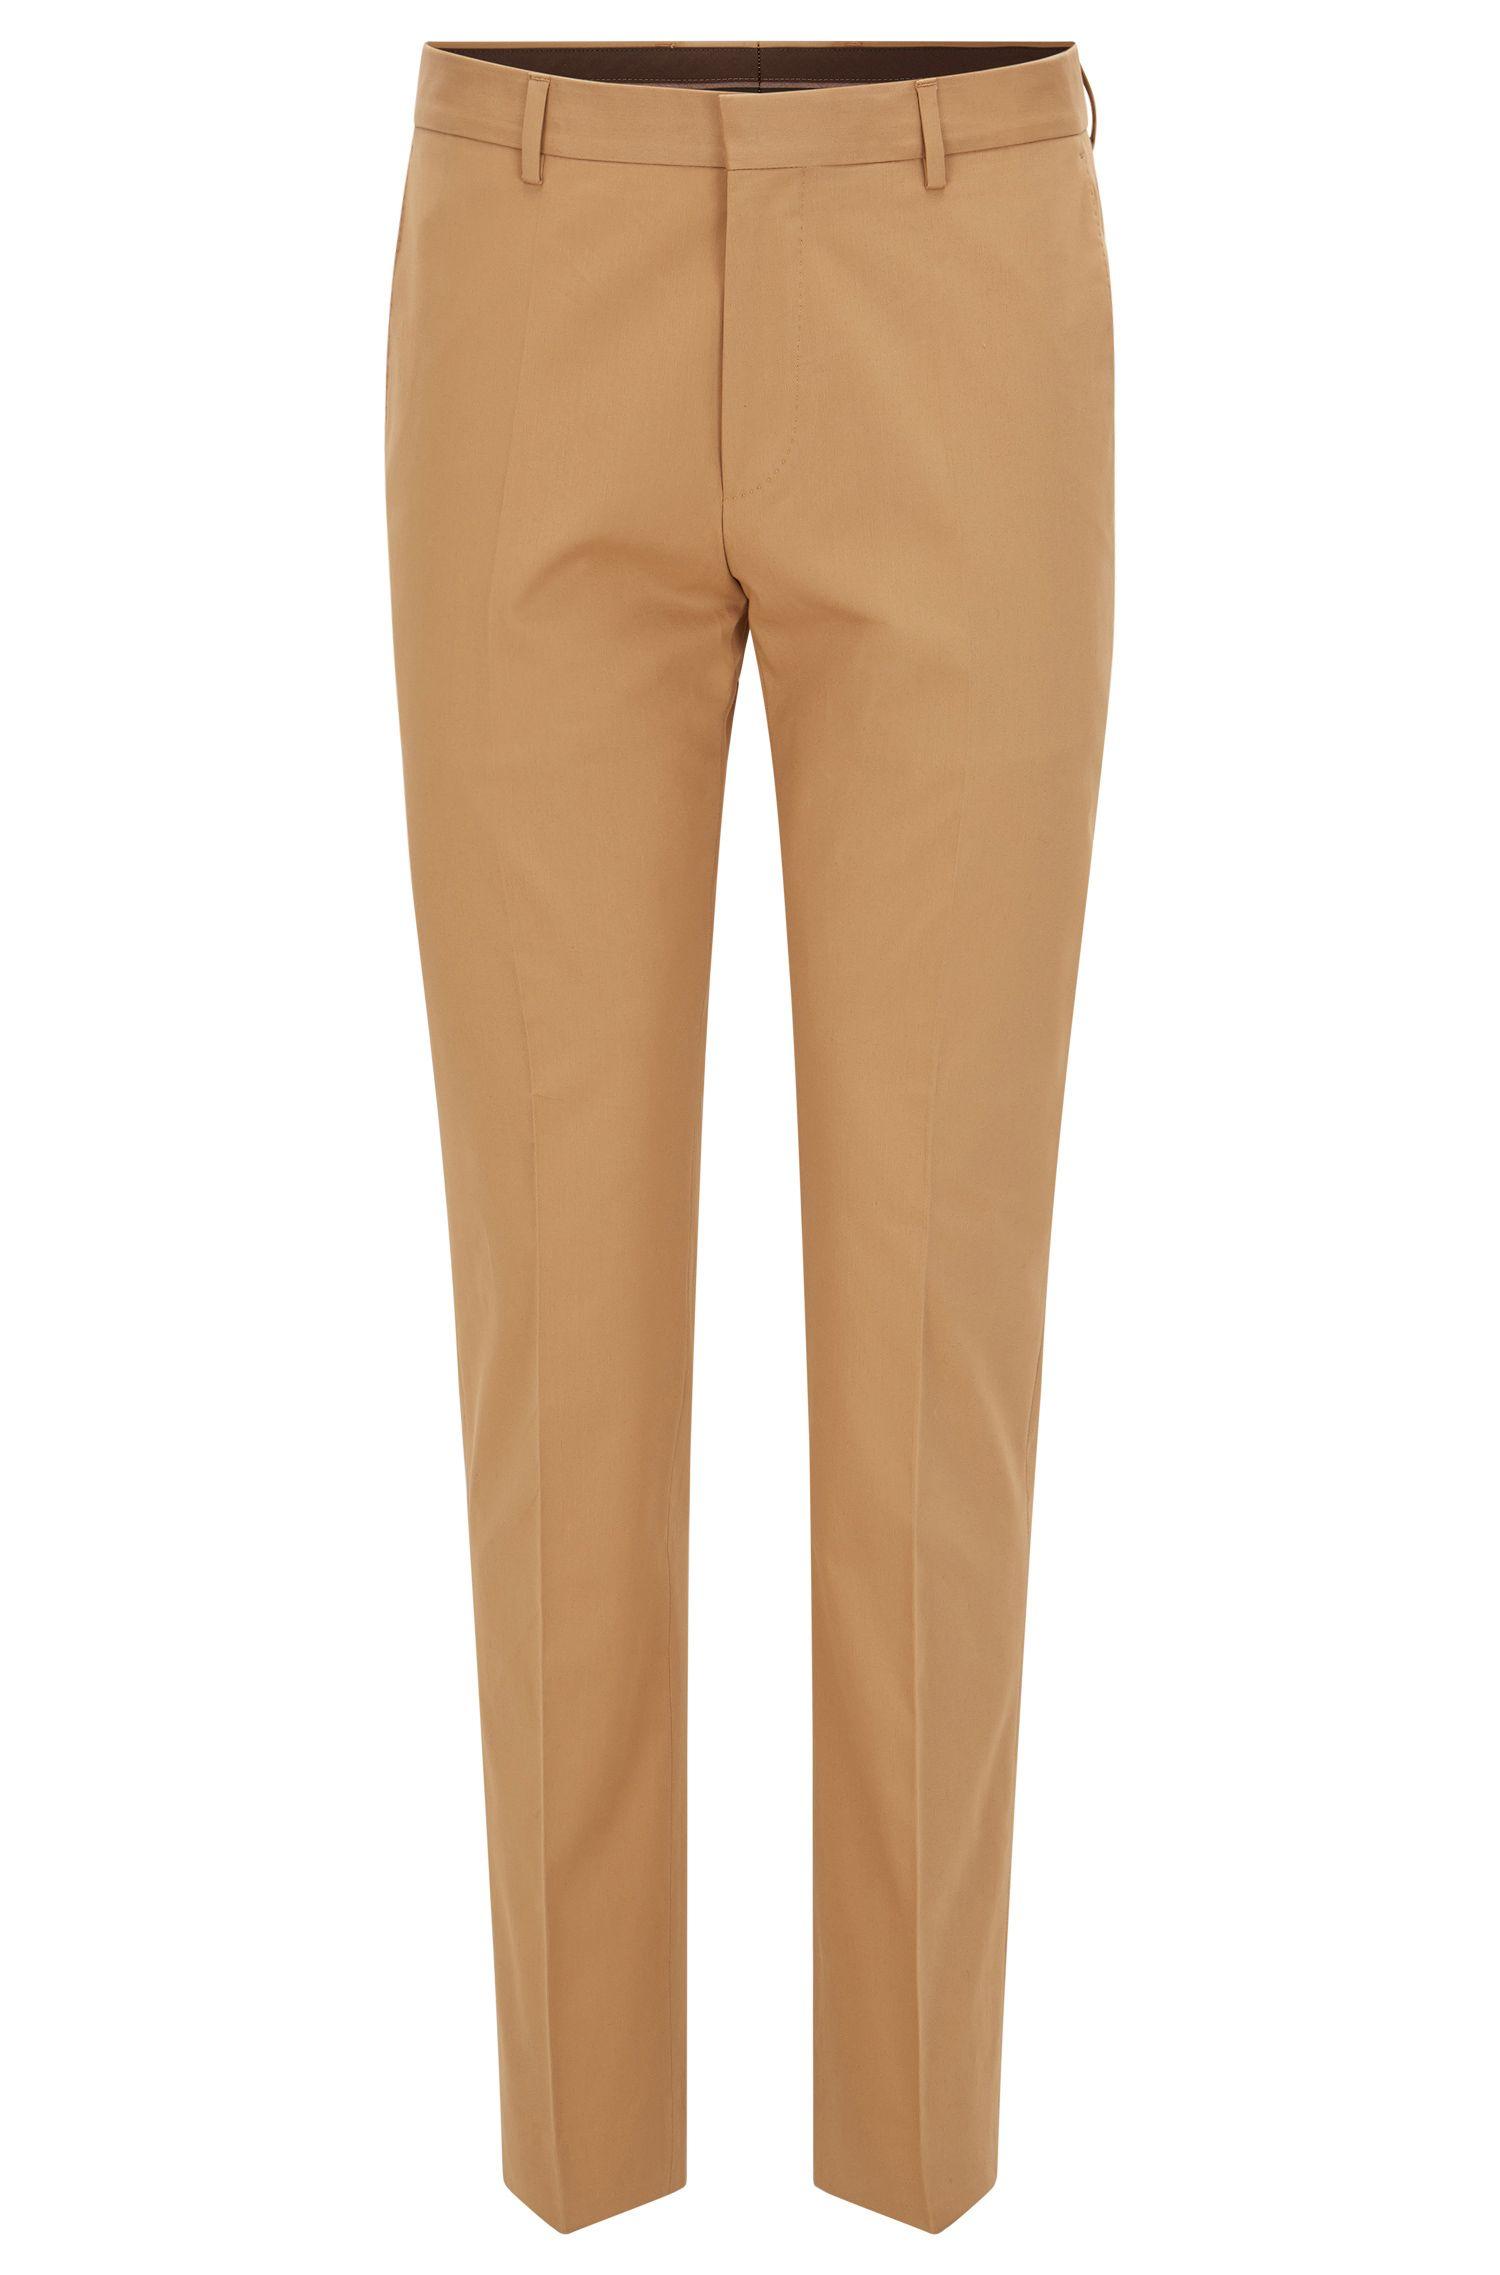 Stretch Cotton Dress Pant, Slim Fit | Genesis, Beige